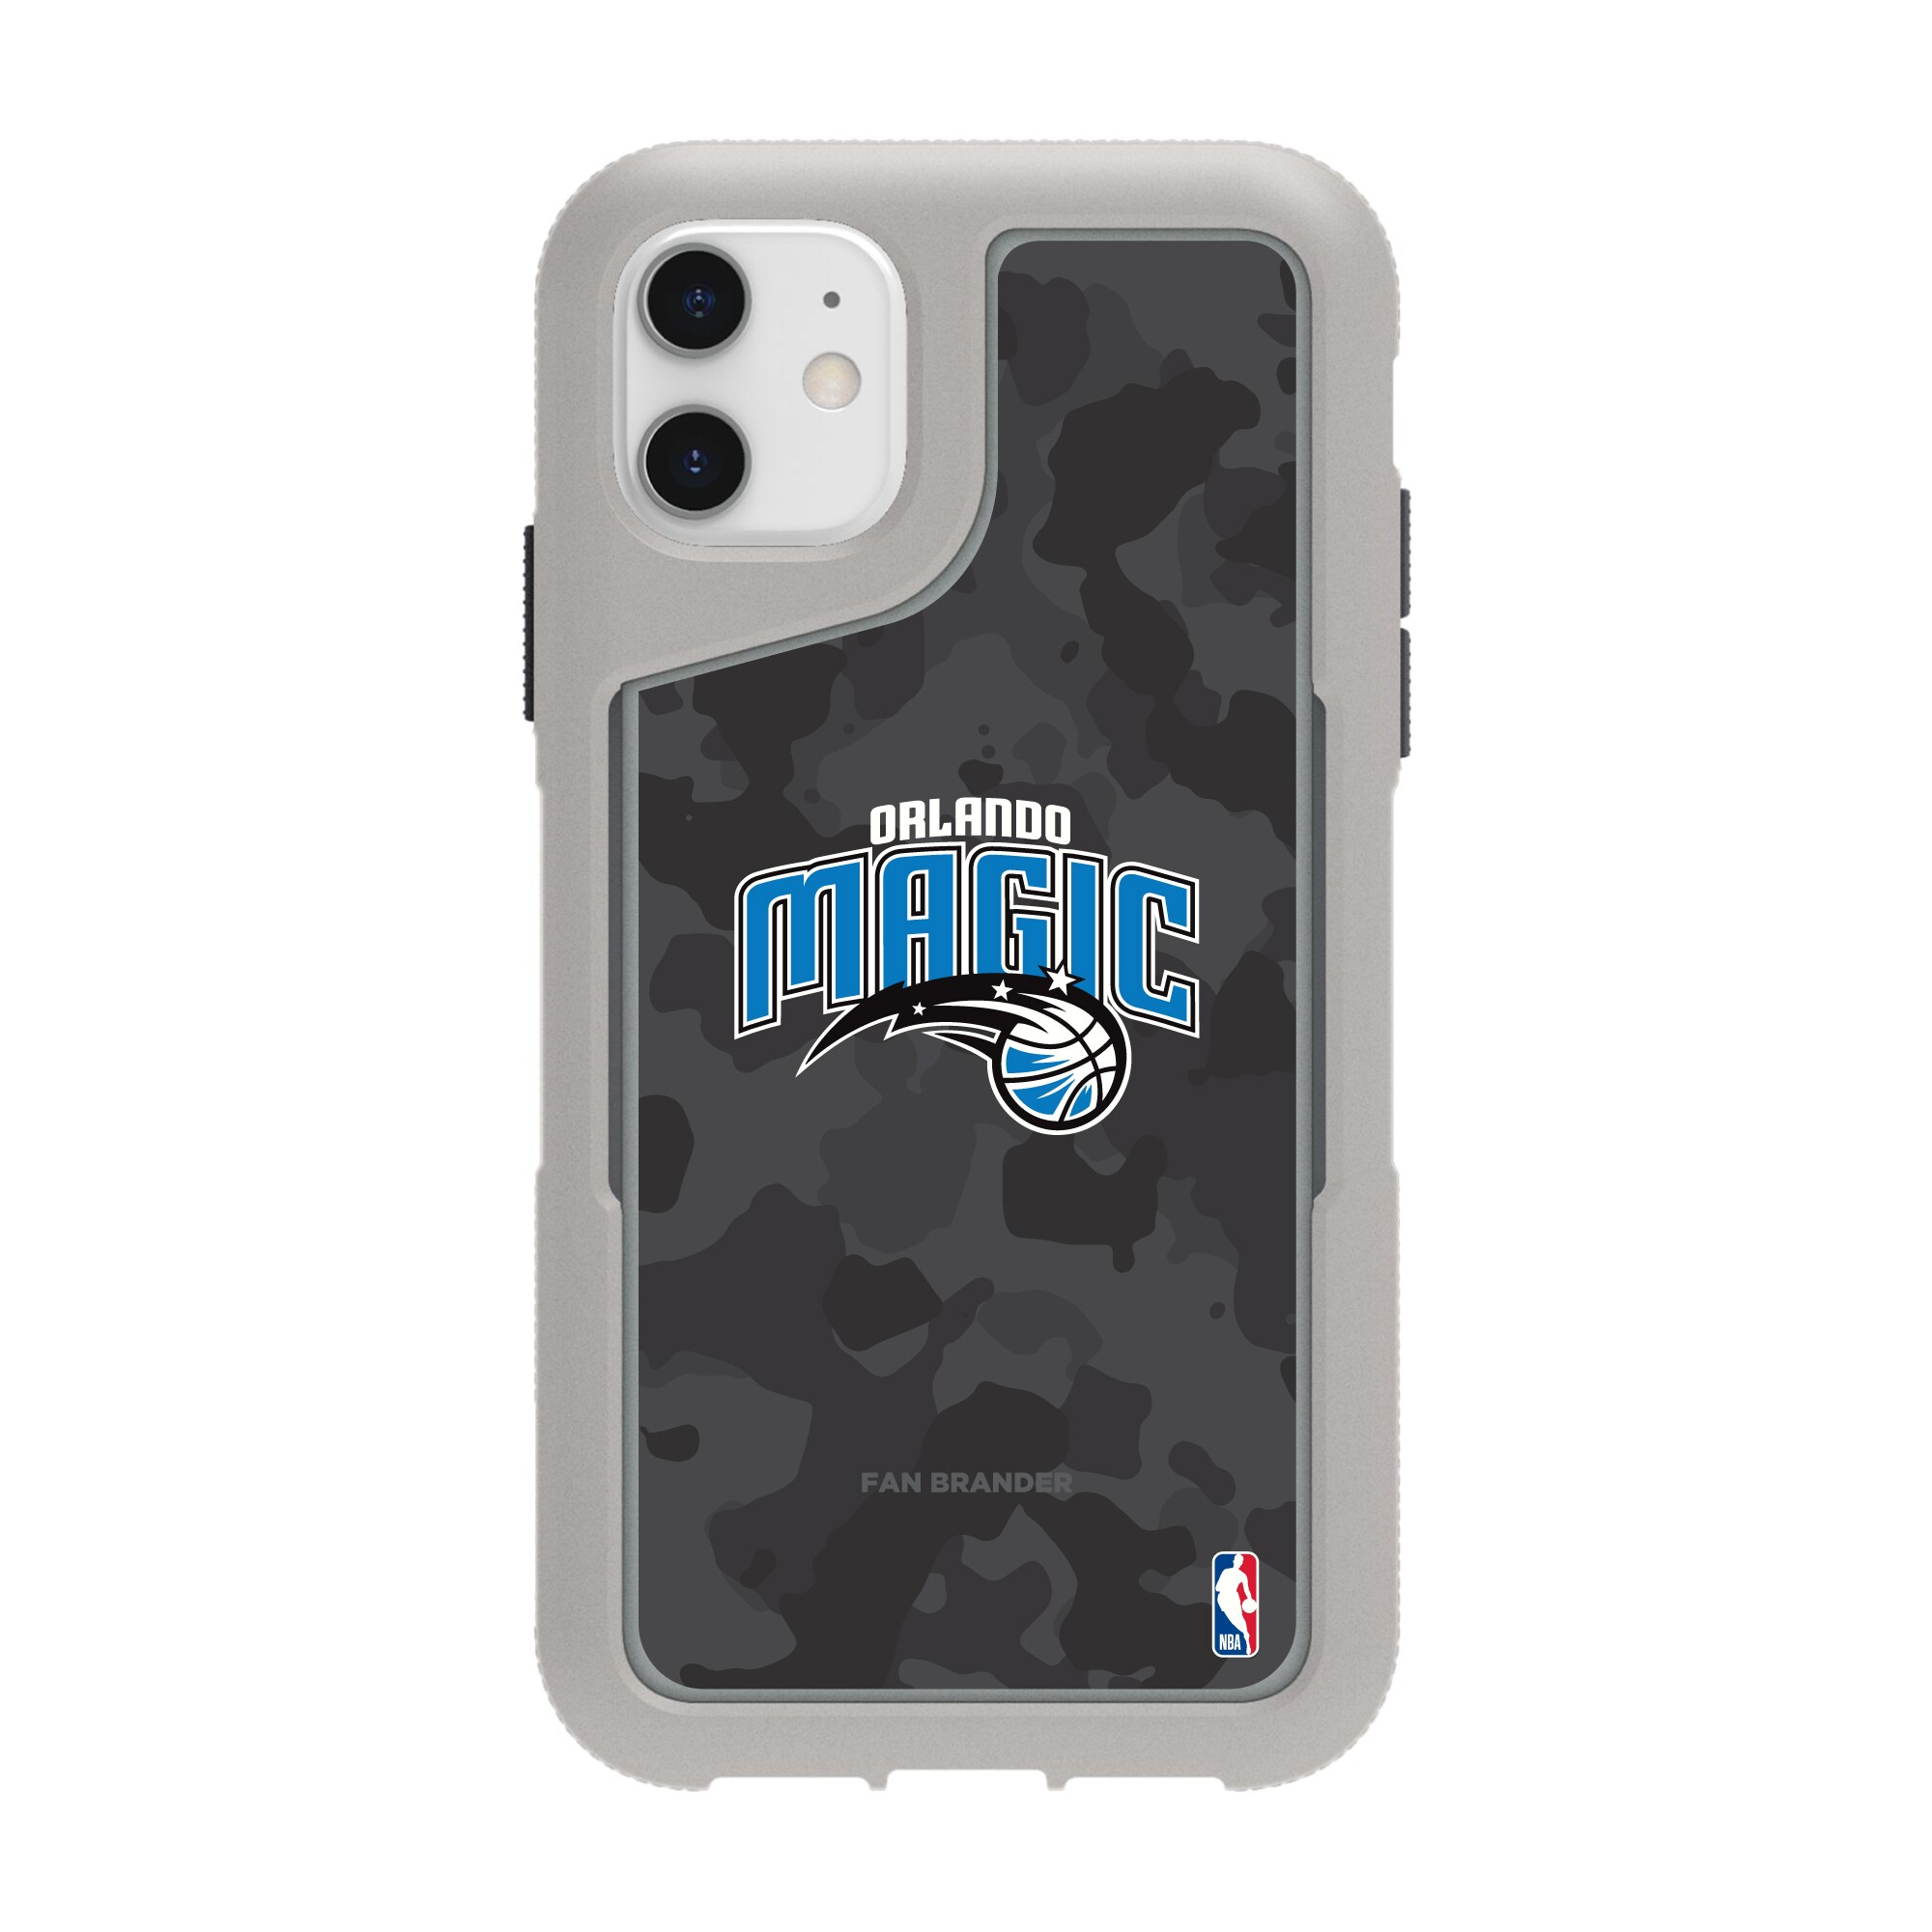 Orlando Magic Griffin Survivor Endurance Camo iPhone Case - Gray